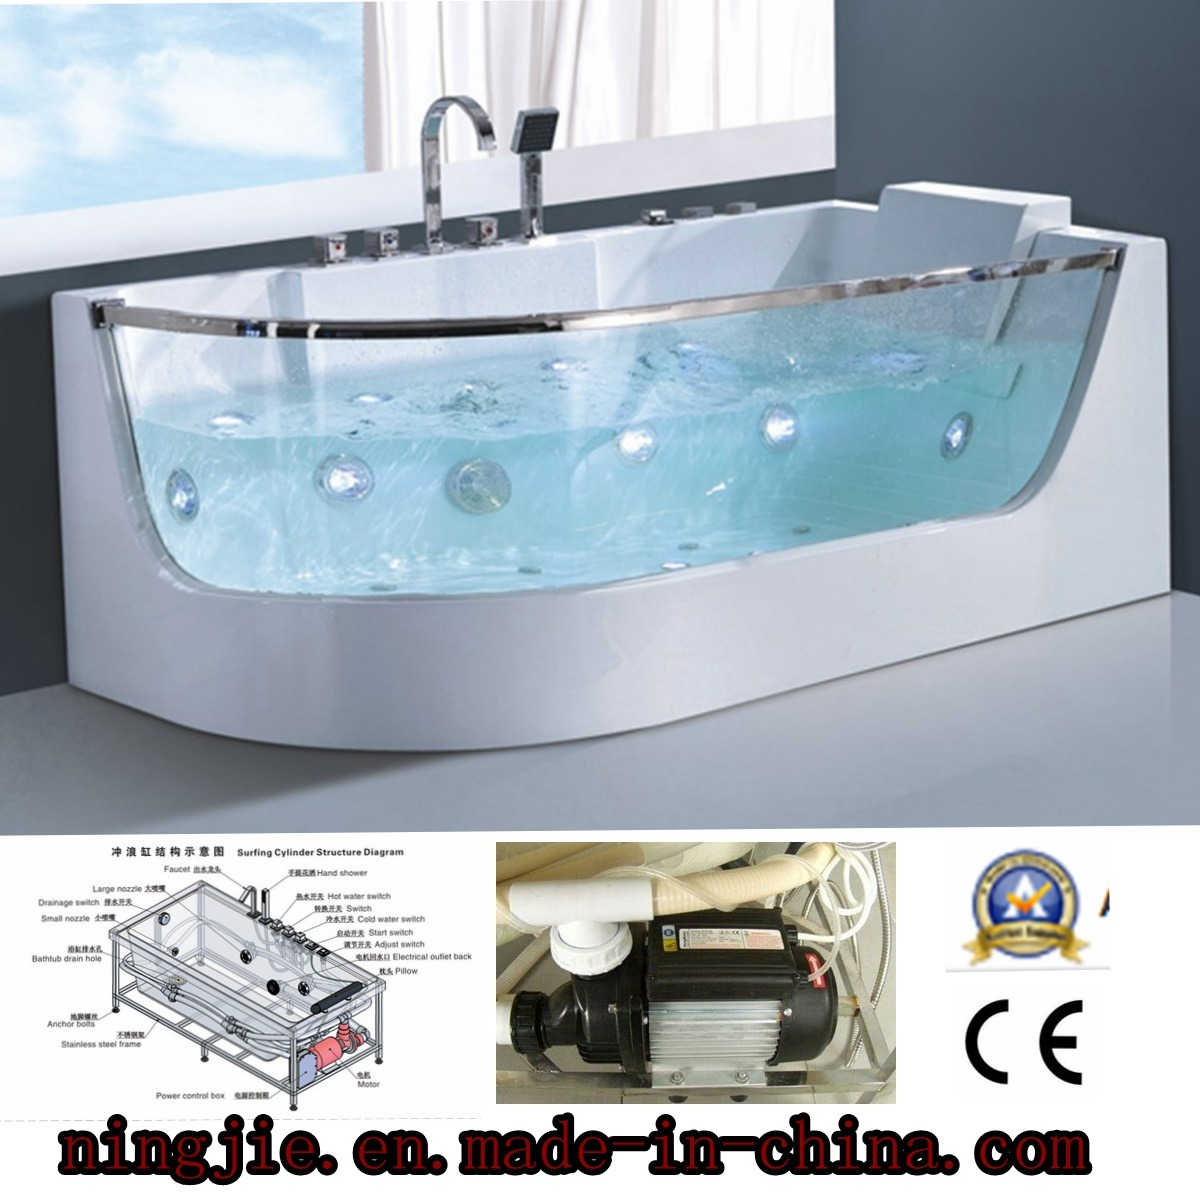 China Beauty Glasses LED Bubble Whirlpool Bath Tub (5407) - China ...